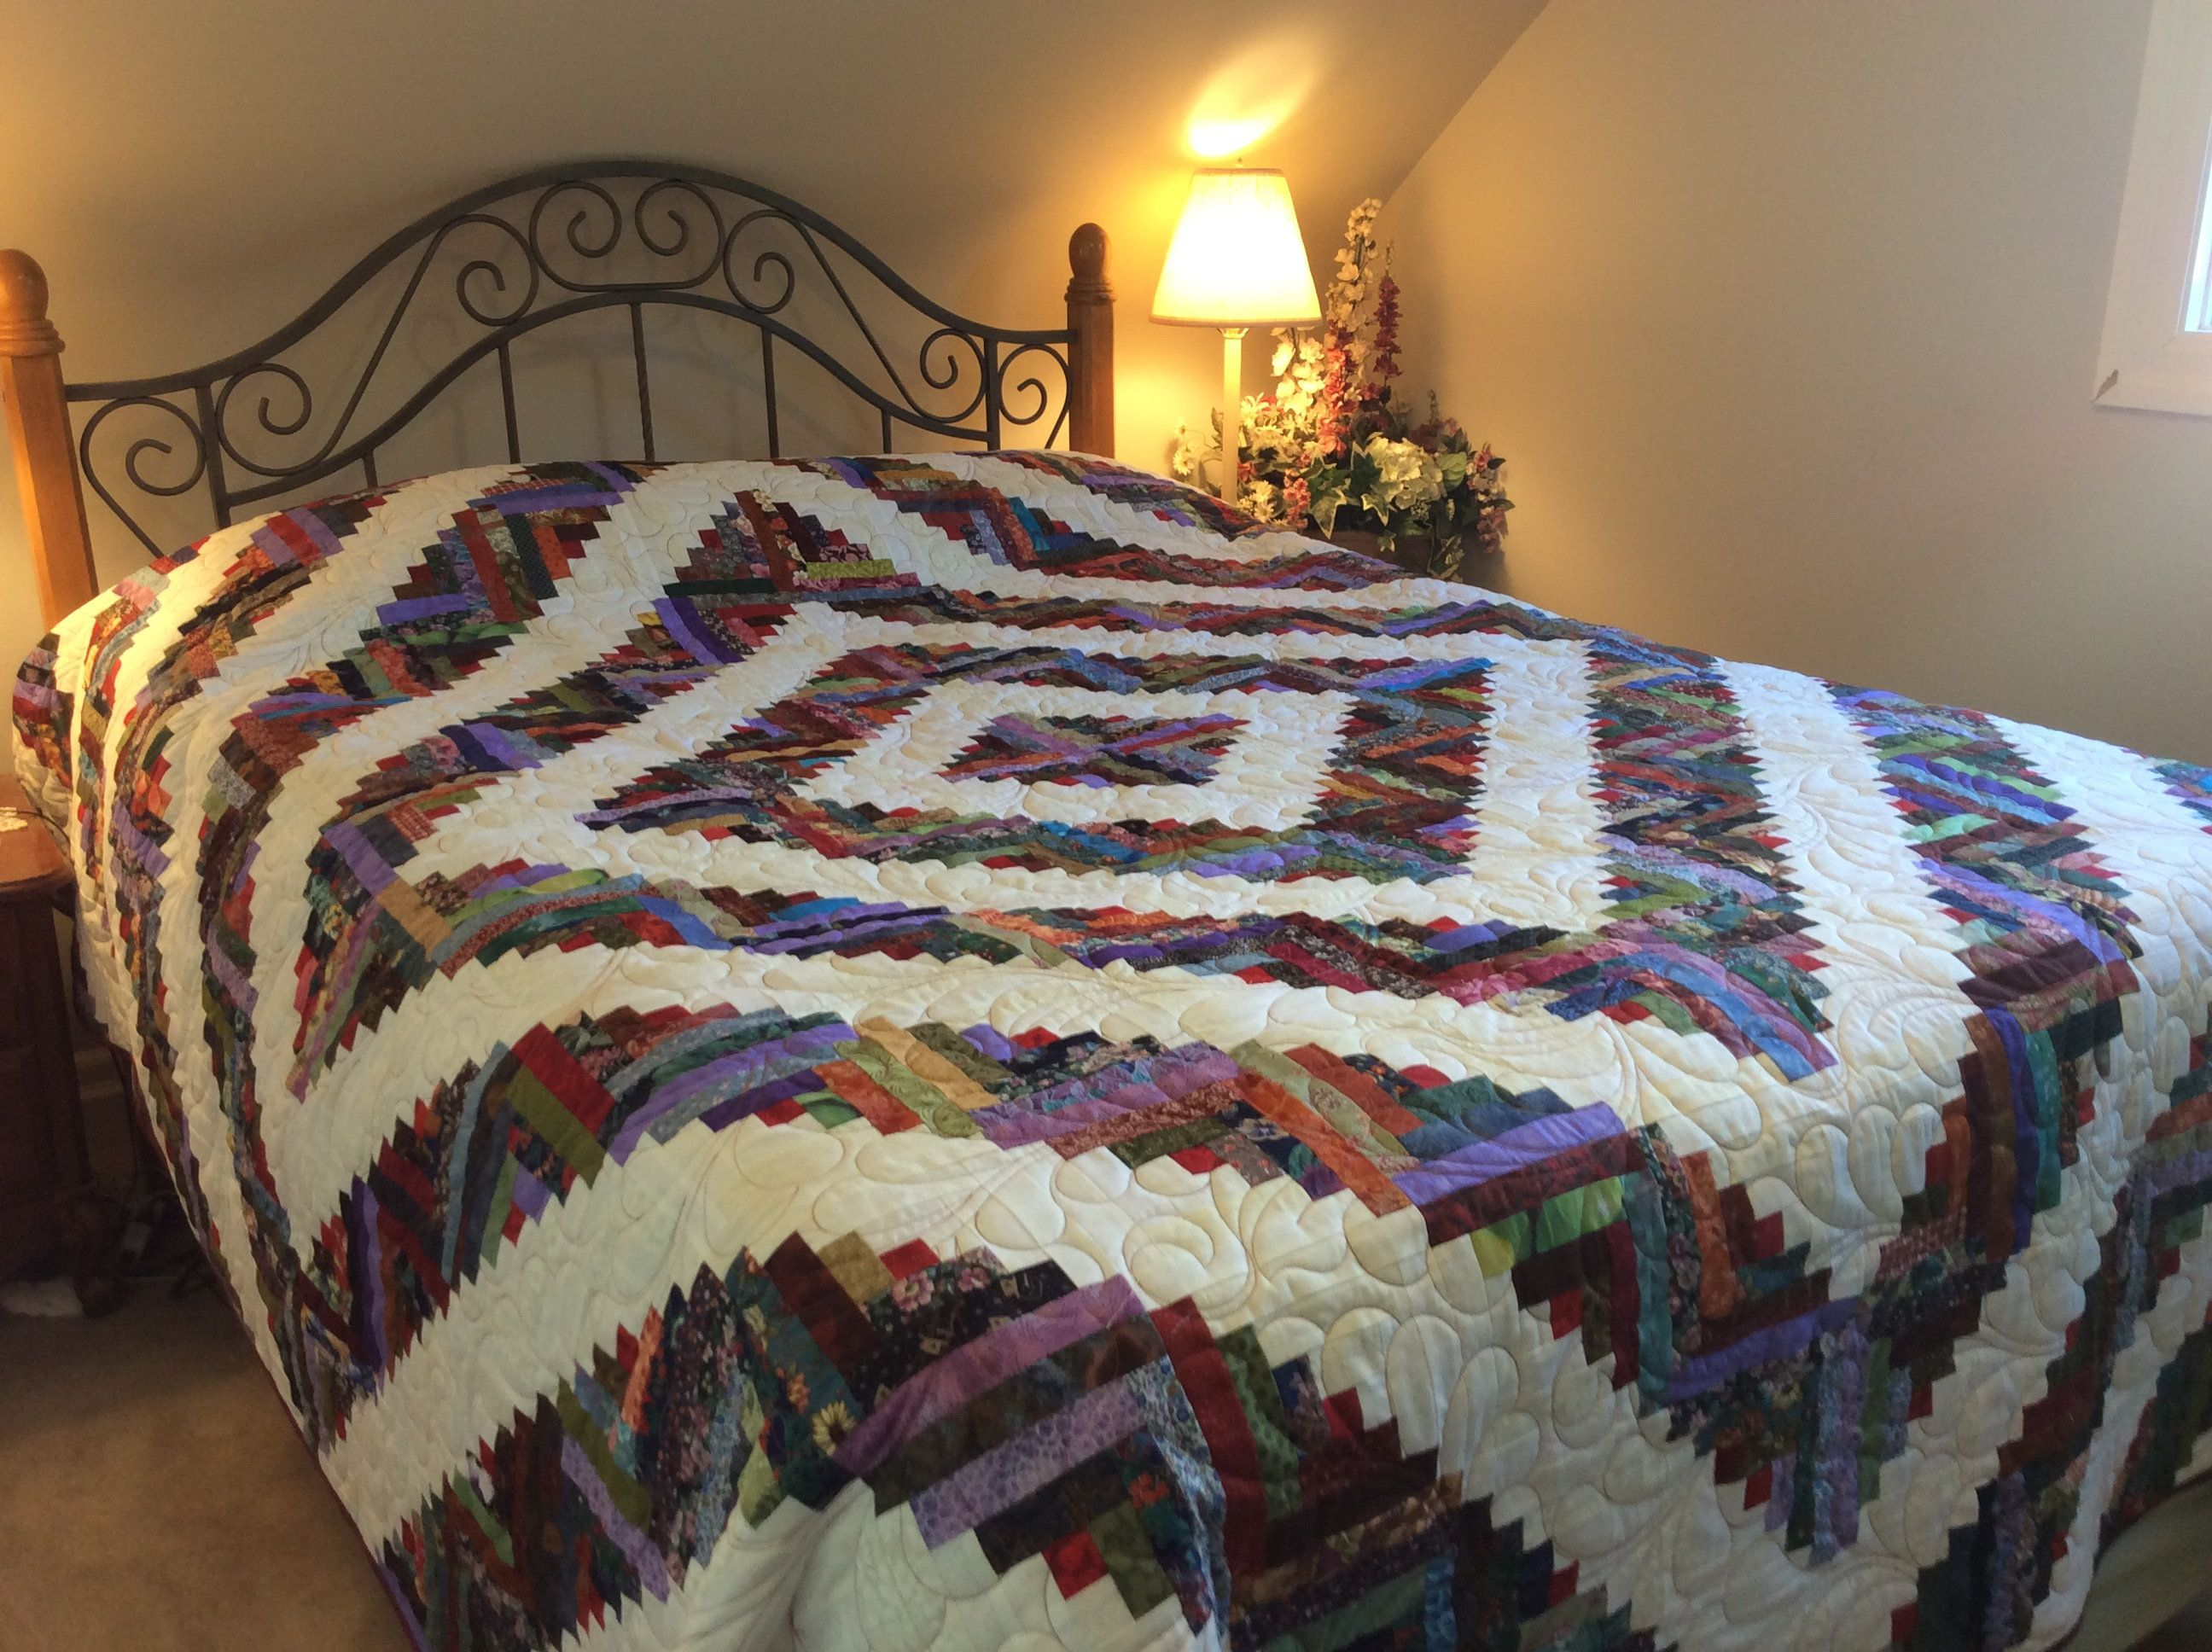 Queen Size Scrappy Bed Quilt Heirloom Log Cabin Quilt Large Quilted Blanket Cream White Blue Green Red Colorful Bed Throw Colourful Bed Throws Quilt Bedding Log Cabin Quilt